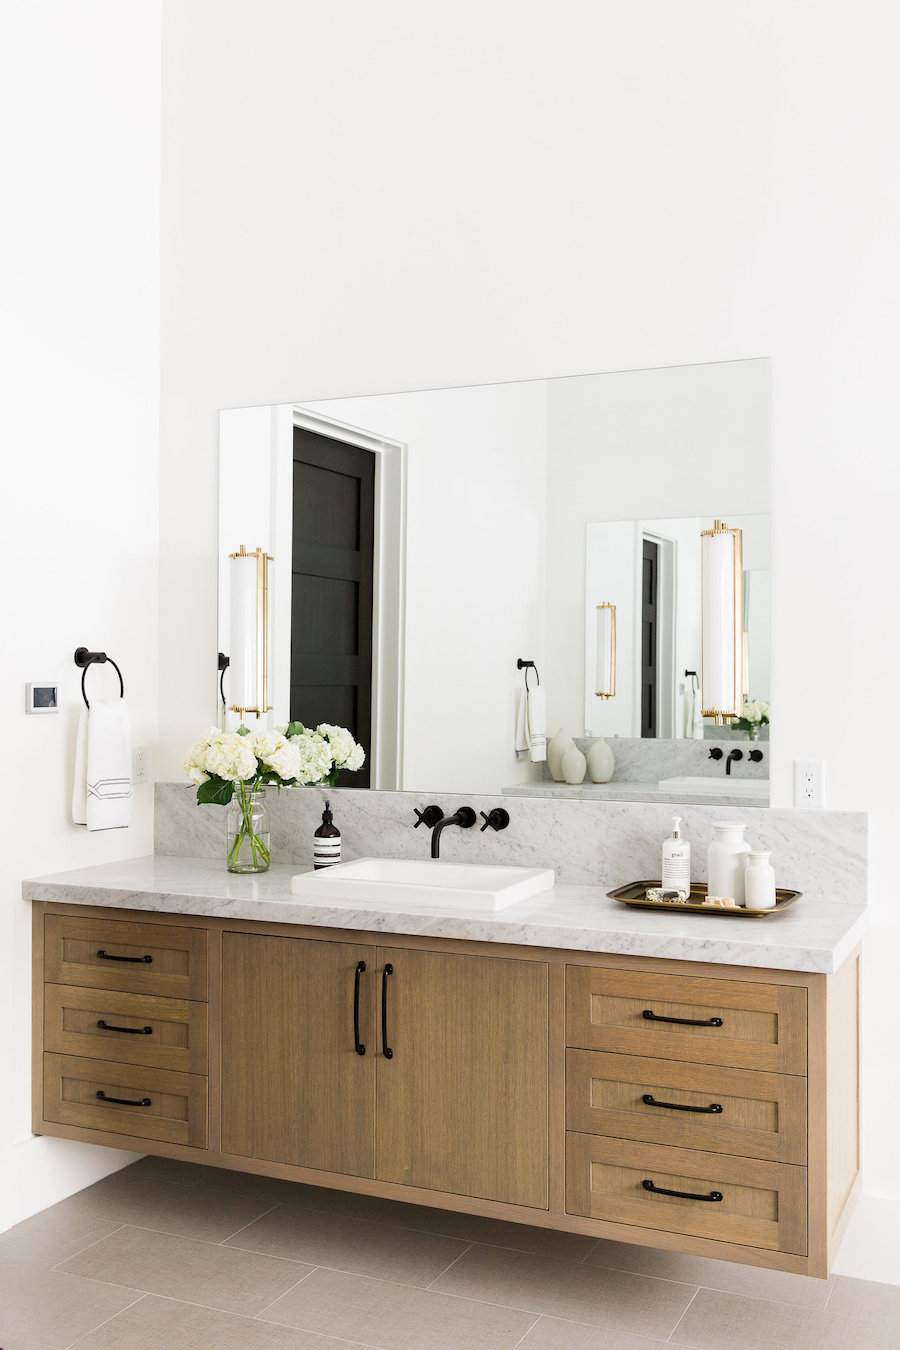 Wood Vanity with Marble countertop and Black Faucet